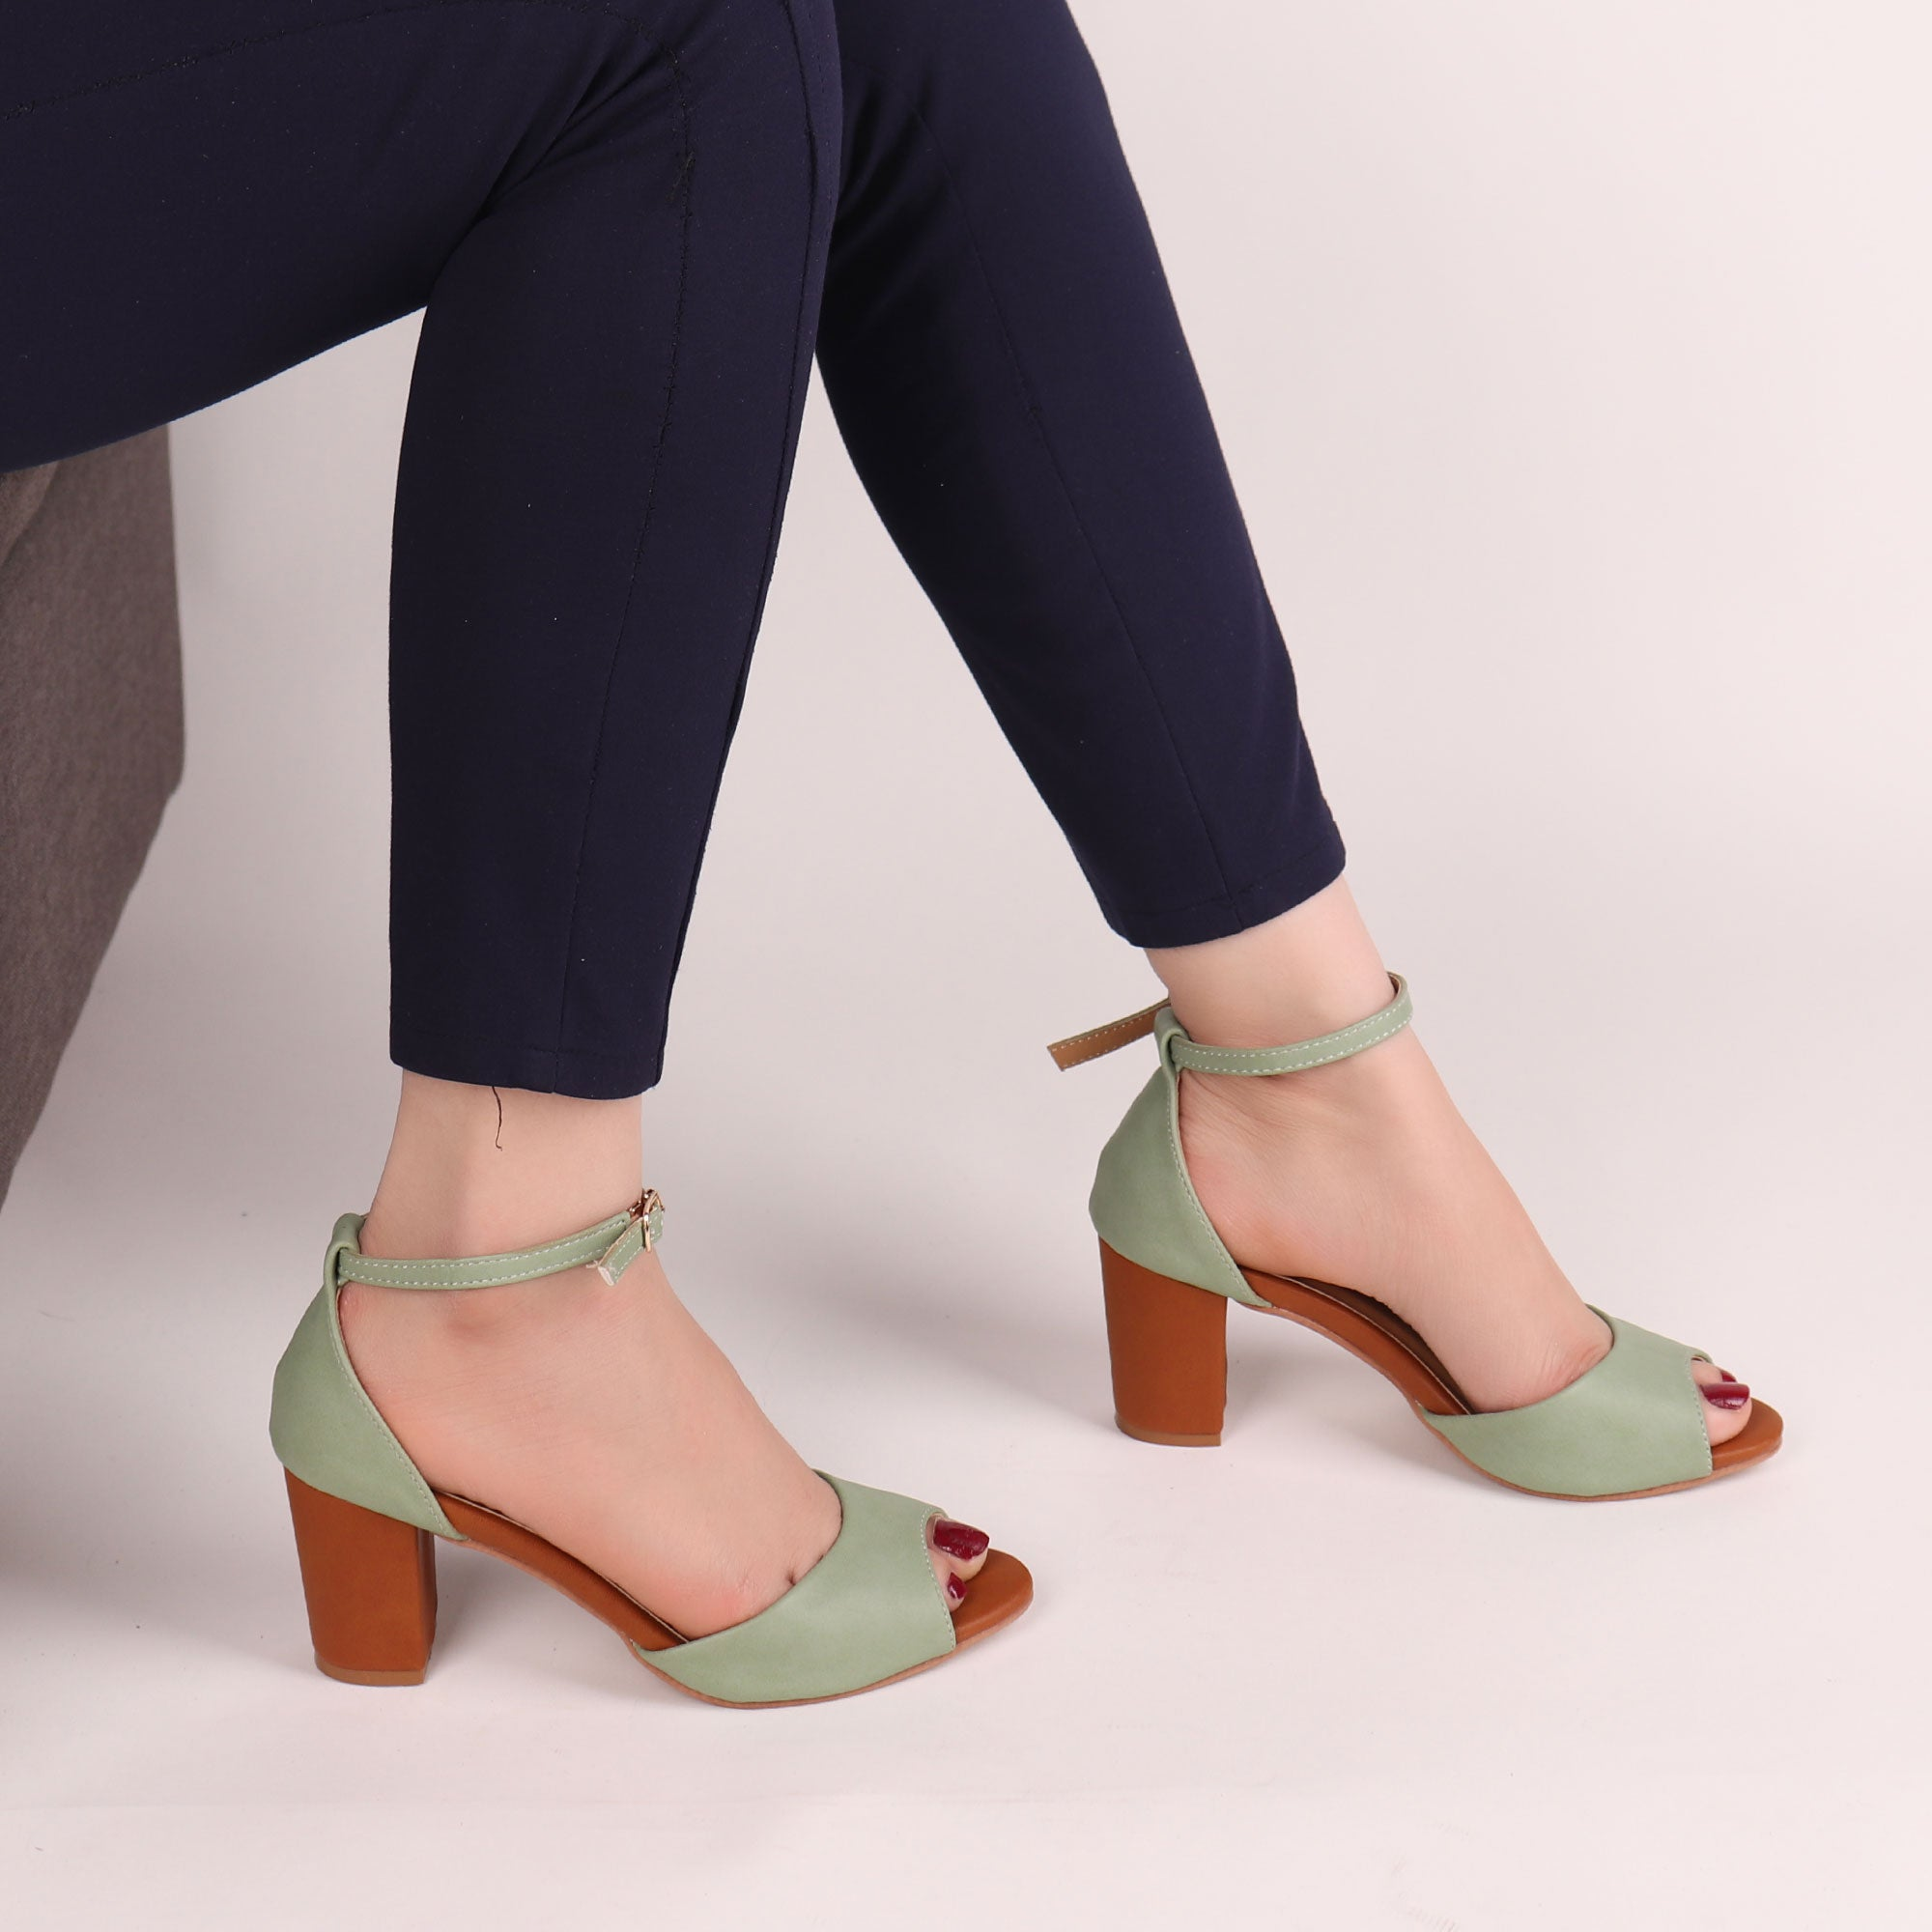 Foot Wear,The fashionista Block Heels In Green - Cippele Multi Store